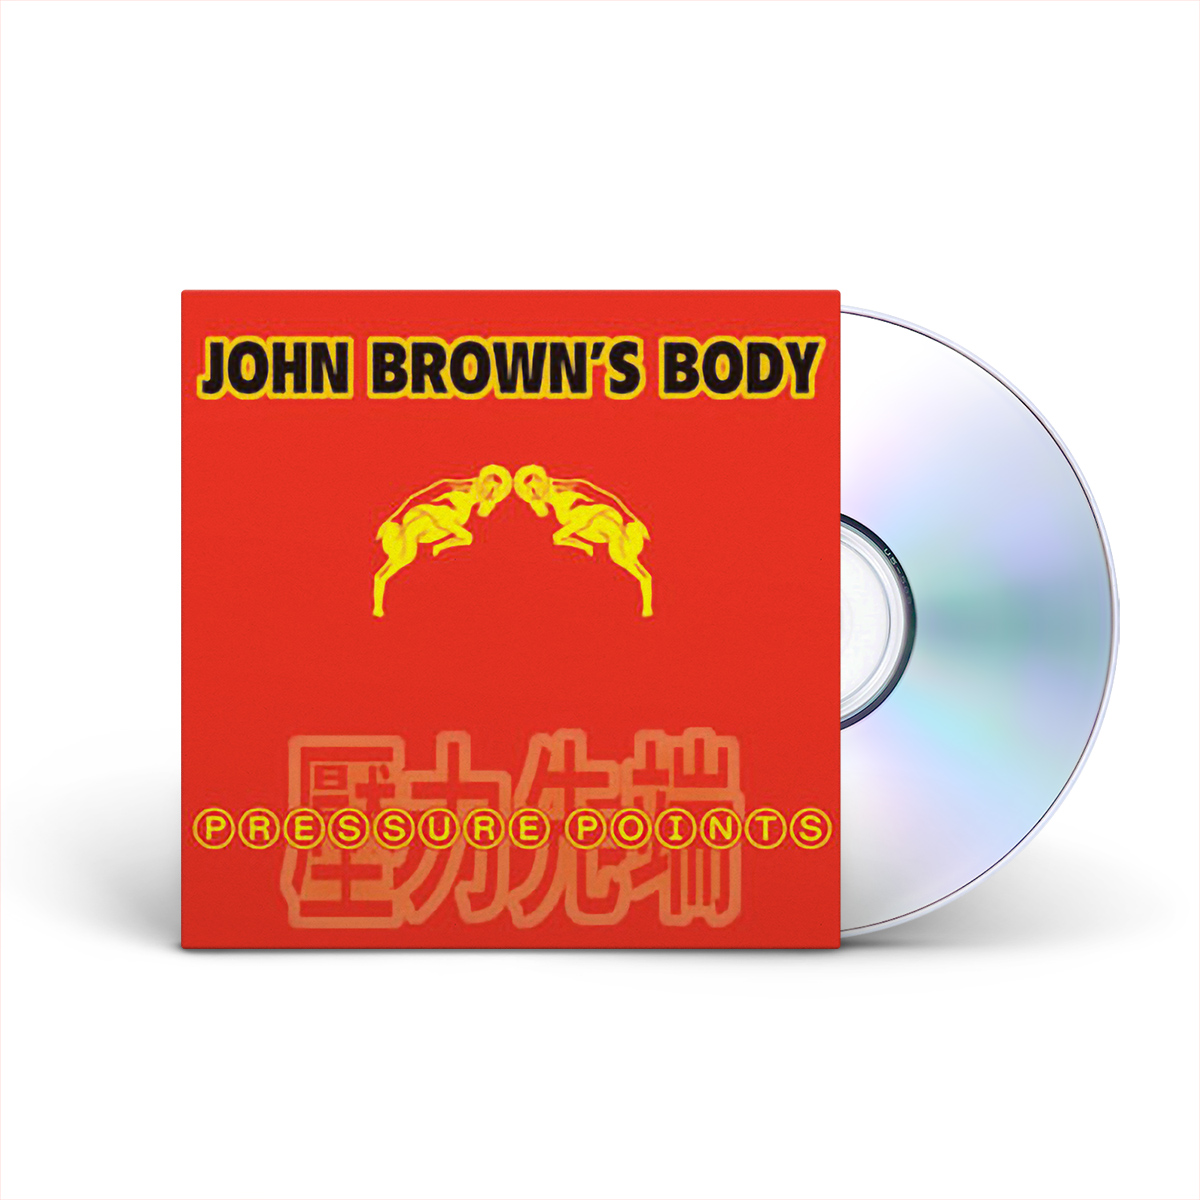 John Brown's Body - Pressure Points CD